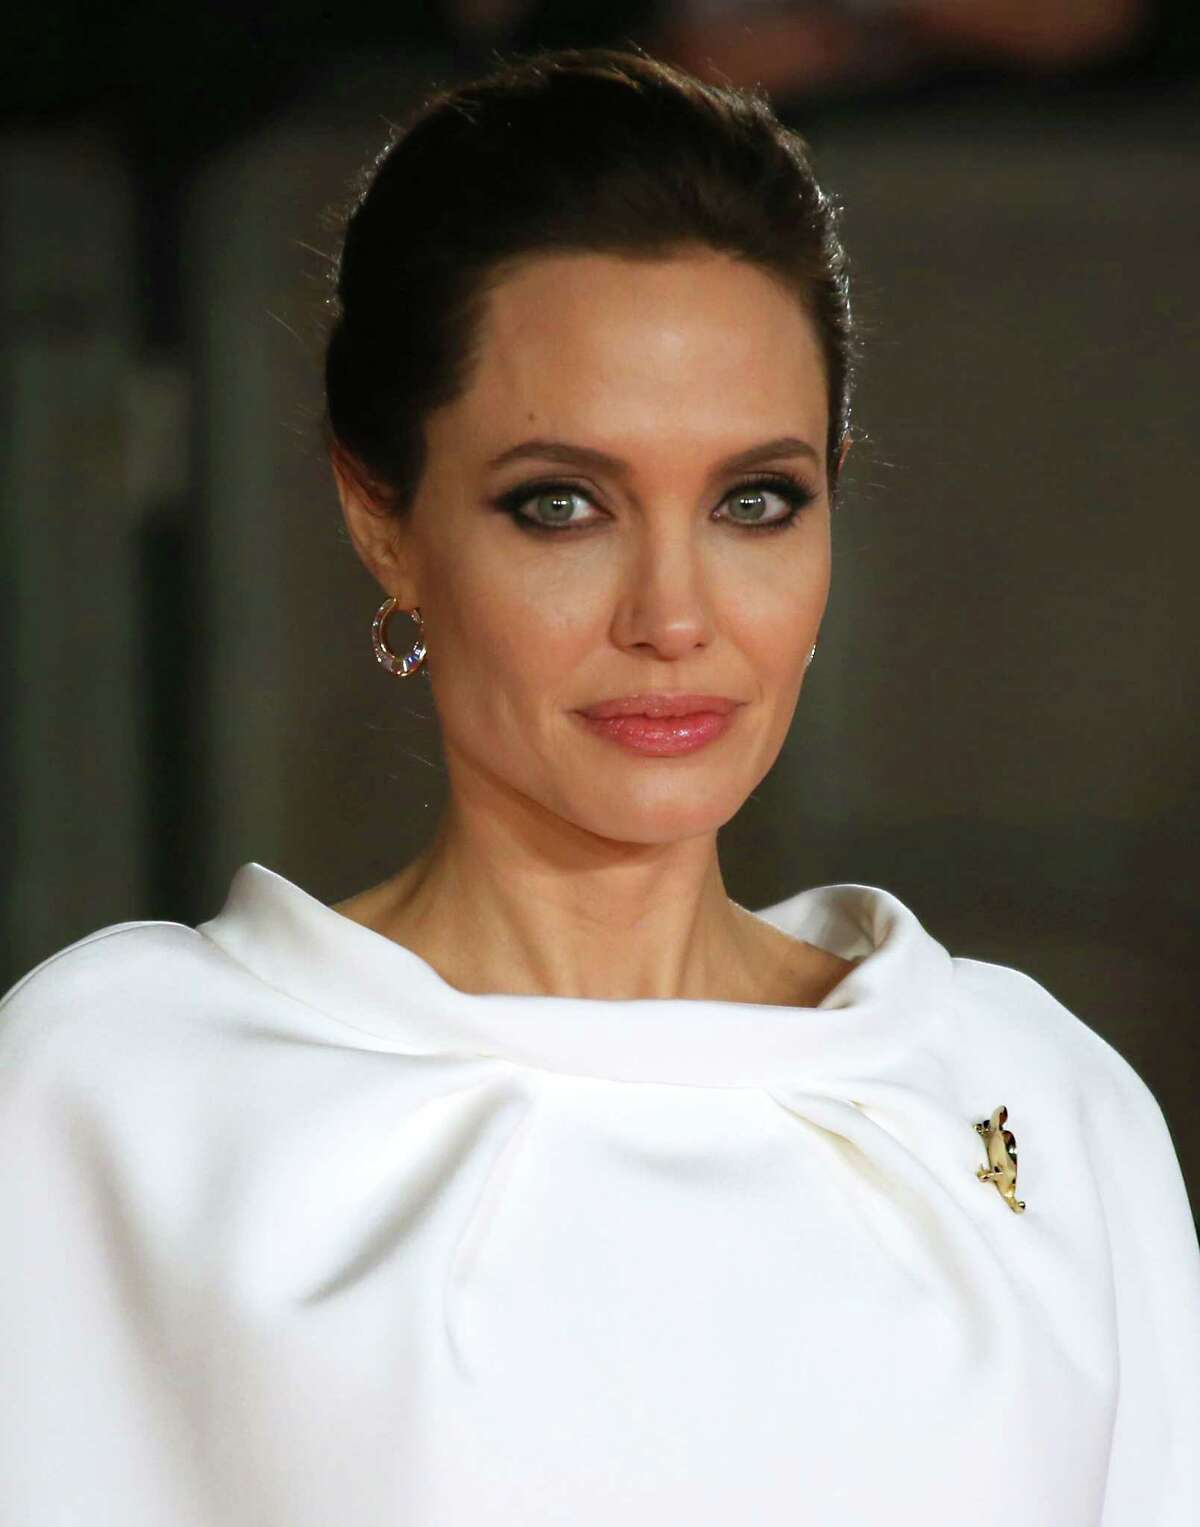 FILE - In this Nov. 25, 2014 file photo, director Angelina Jolie poses for photographers upon arrival at the premiere of the film